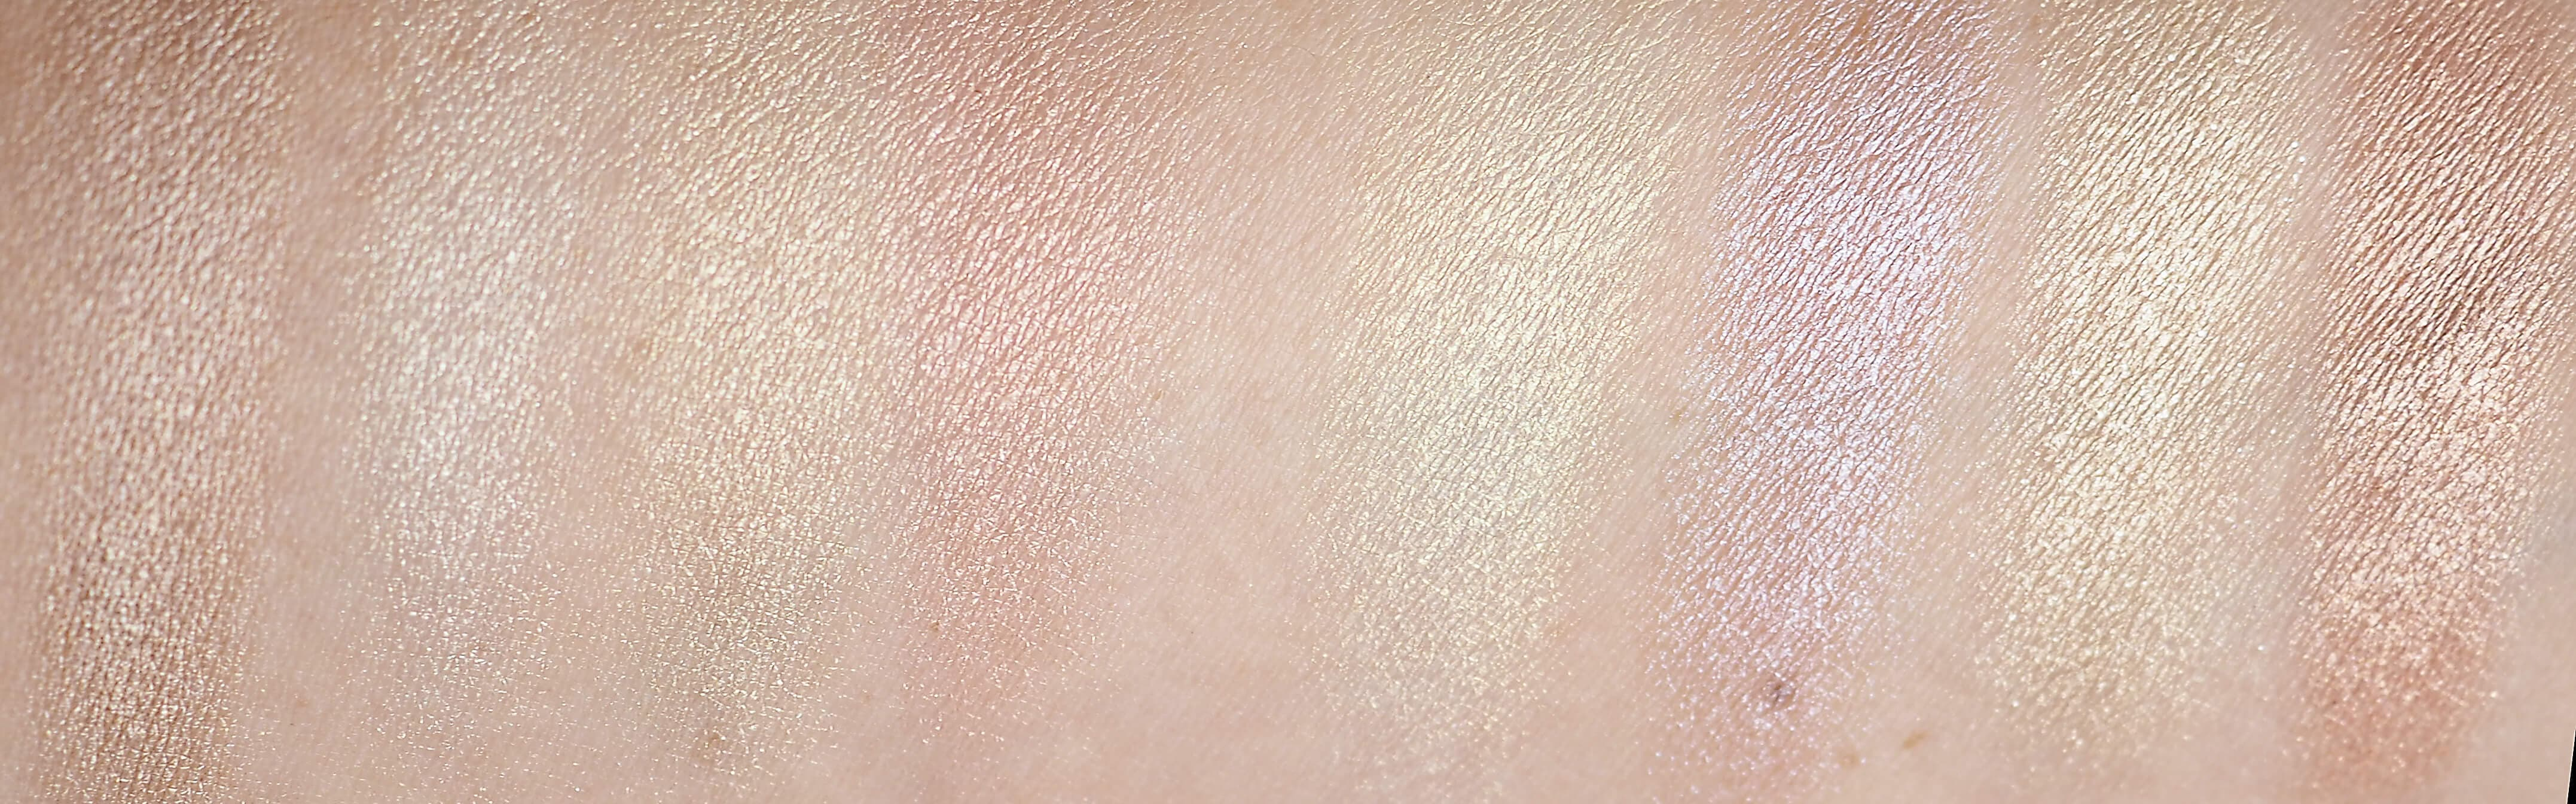 SWATCHES HUDA BEAUTY 3D HIGHLIGHTER